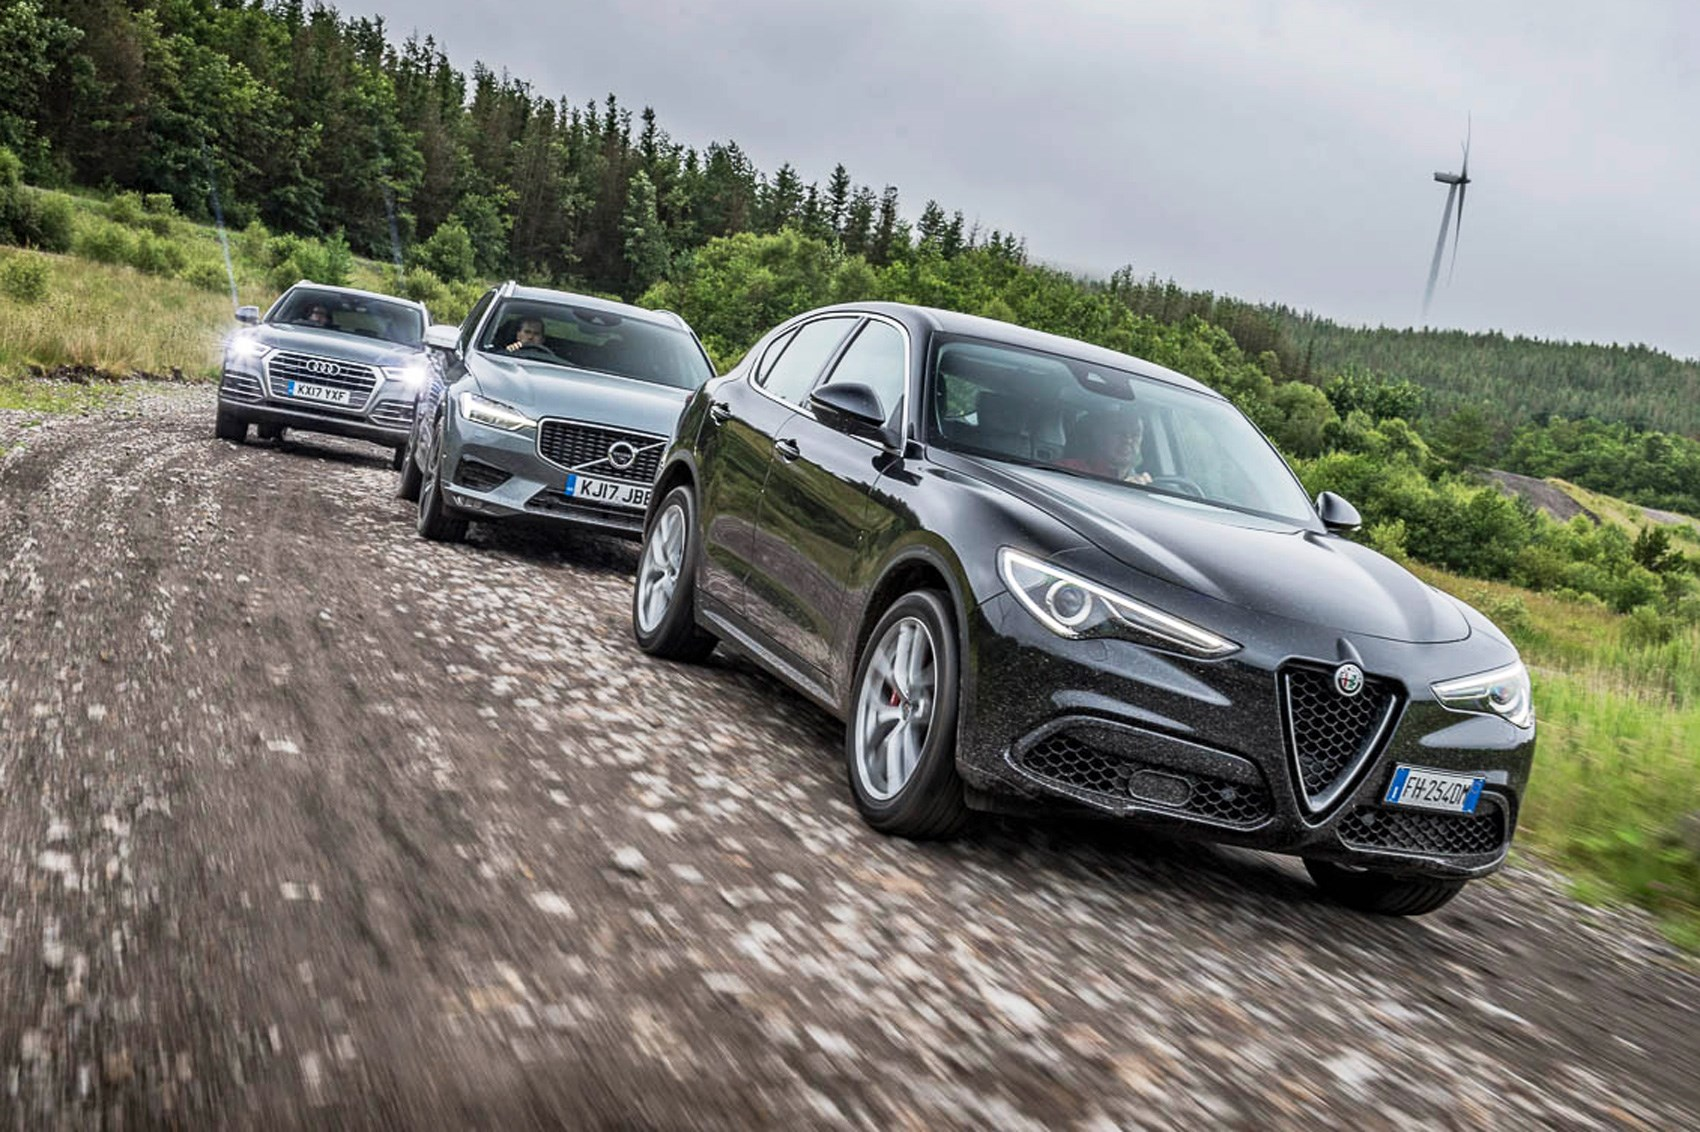 Alfa Romeo Stelvio Vs Volvo Xc60 Vs Audi Q5 Triple Test Review Car